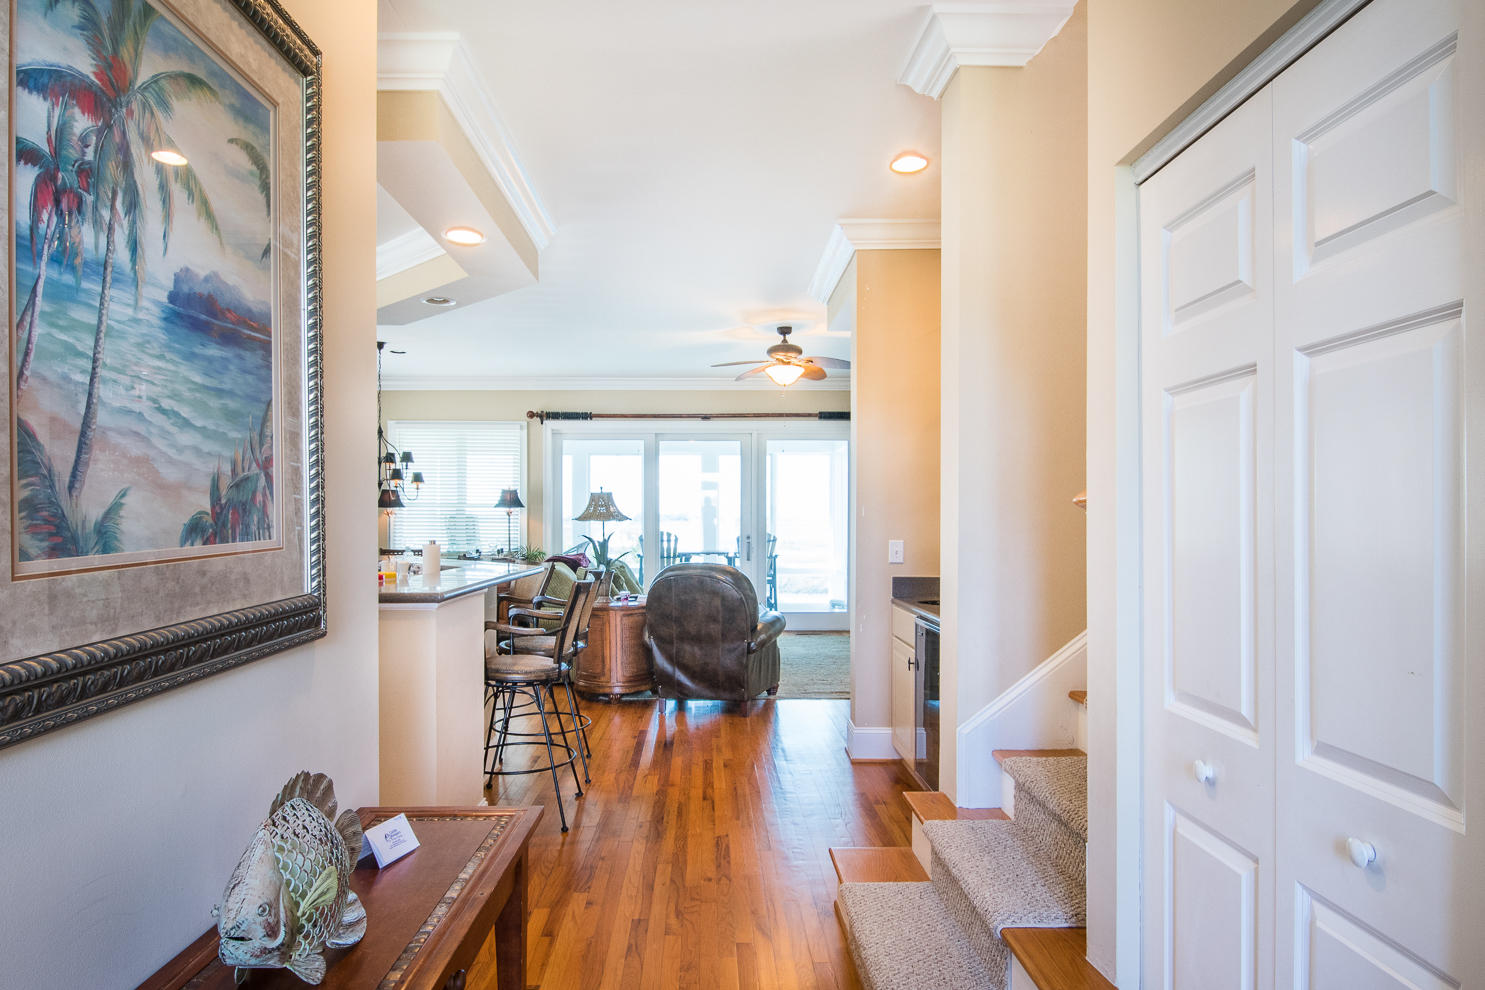 Tolers Cove Homes For Sale - B-4 & B-5 Tolers Cove Marina 70ft + Home, Mount Pleasant, SC - 40